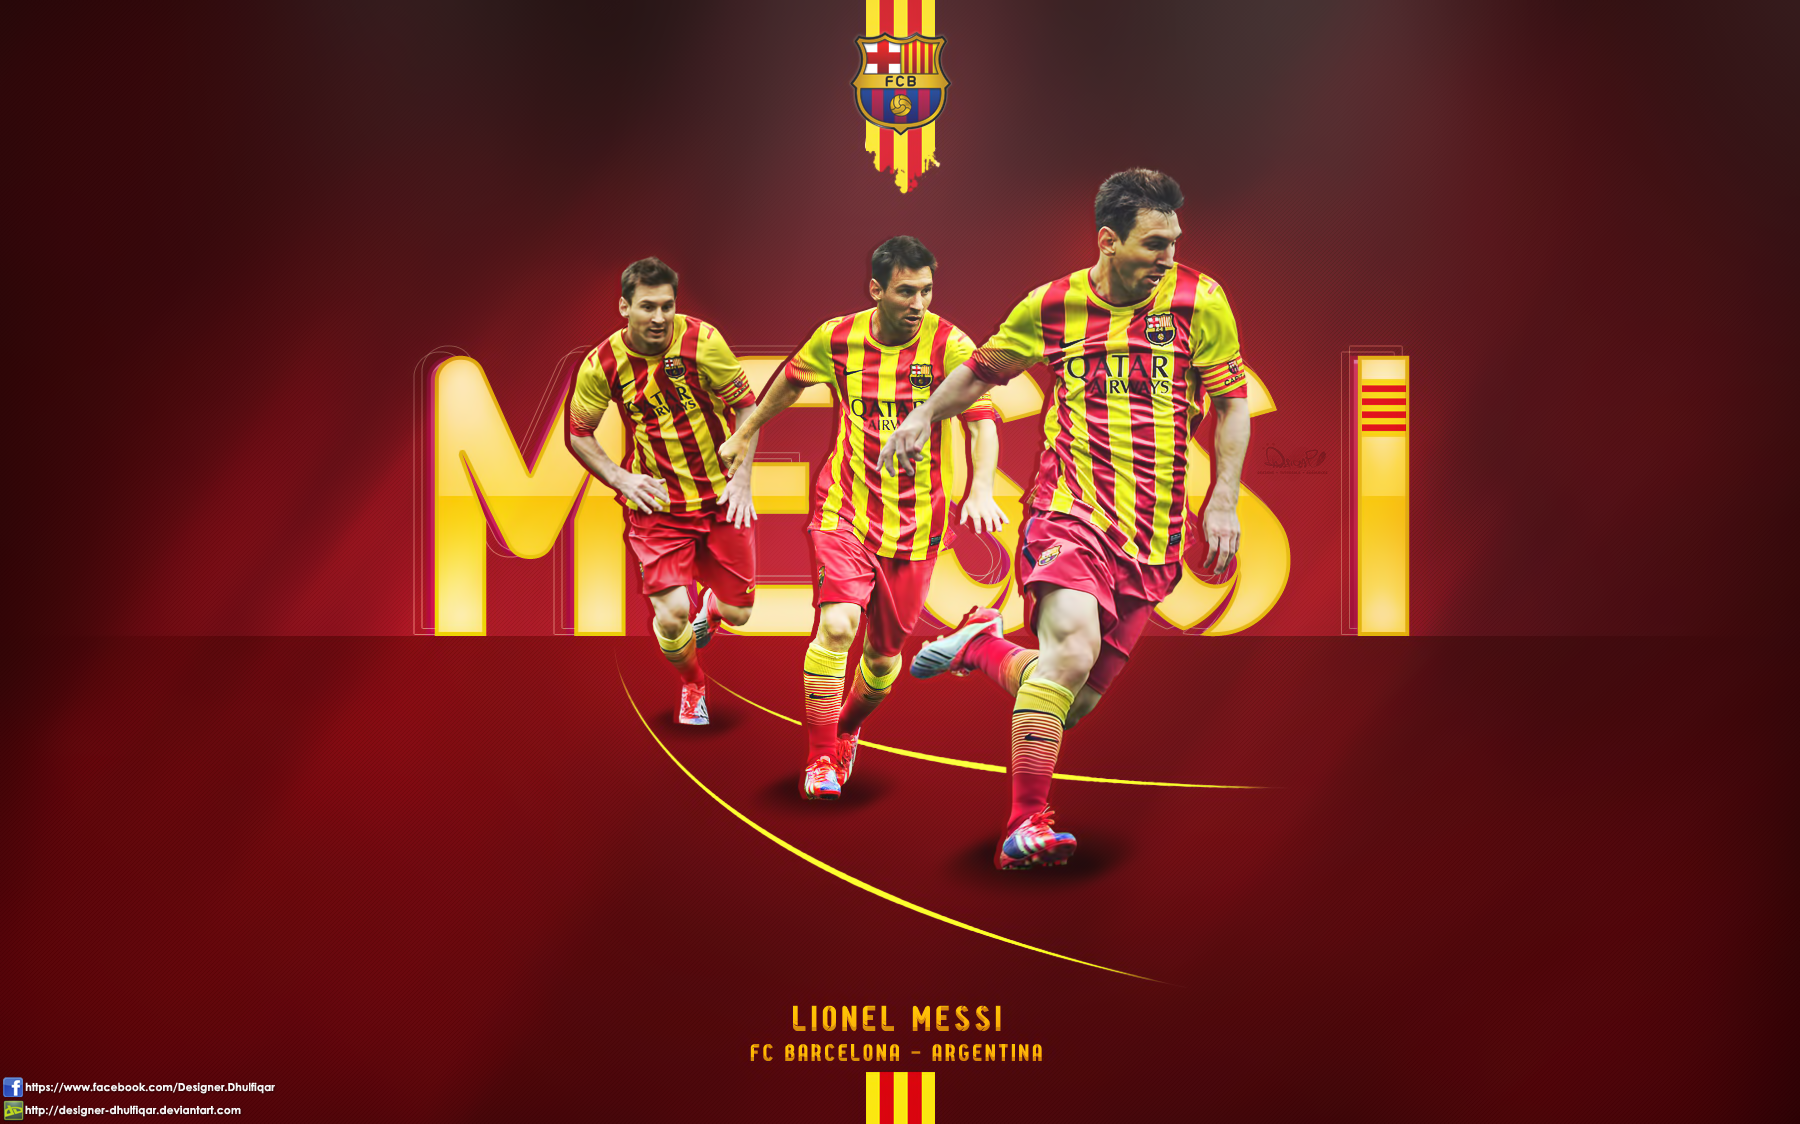 Lionel messi fc barcelona by designer dhulfiqar on deviantart lionel messi fc barcelona by designer dhulfiqar voltagebd Choice Image